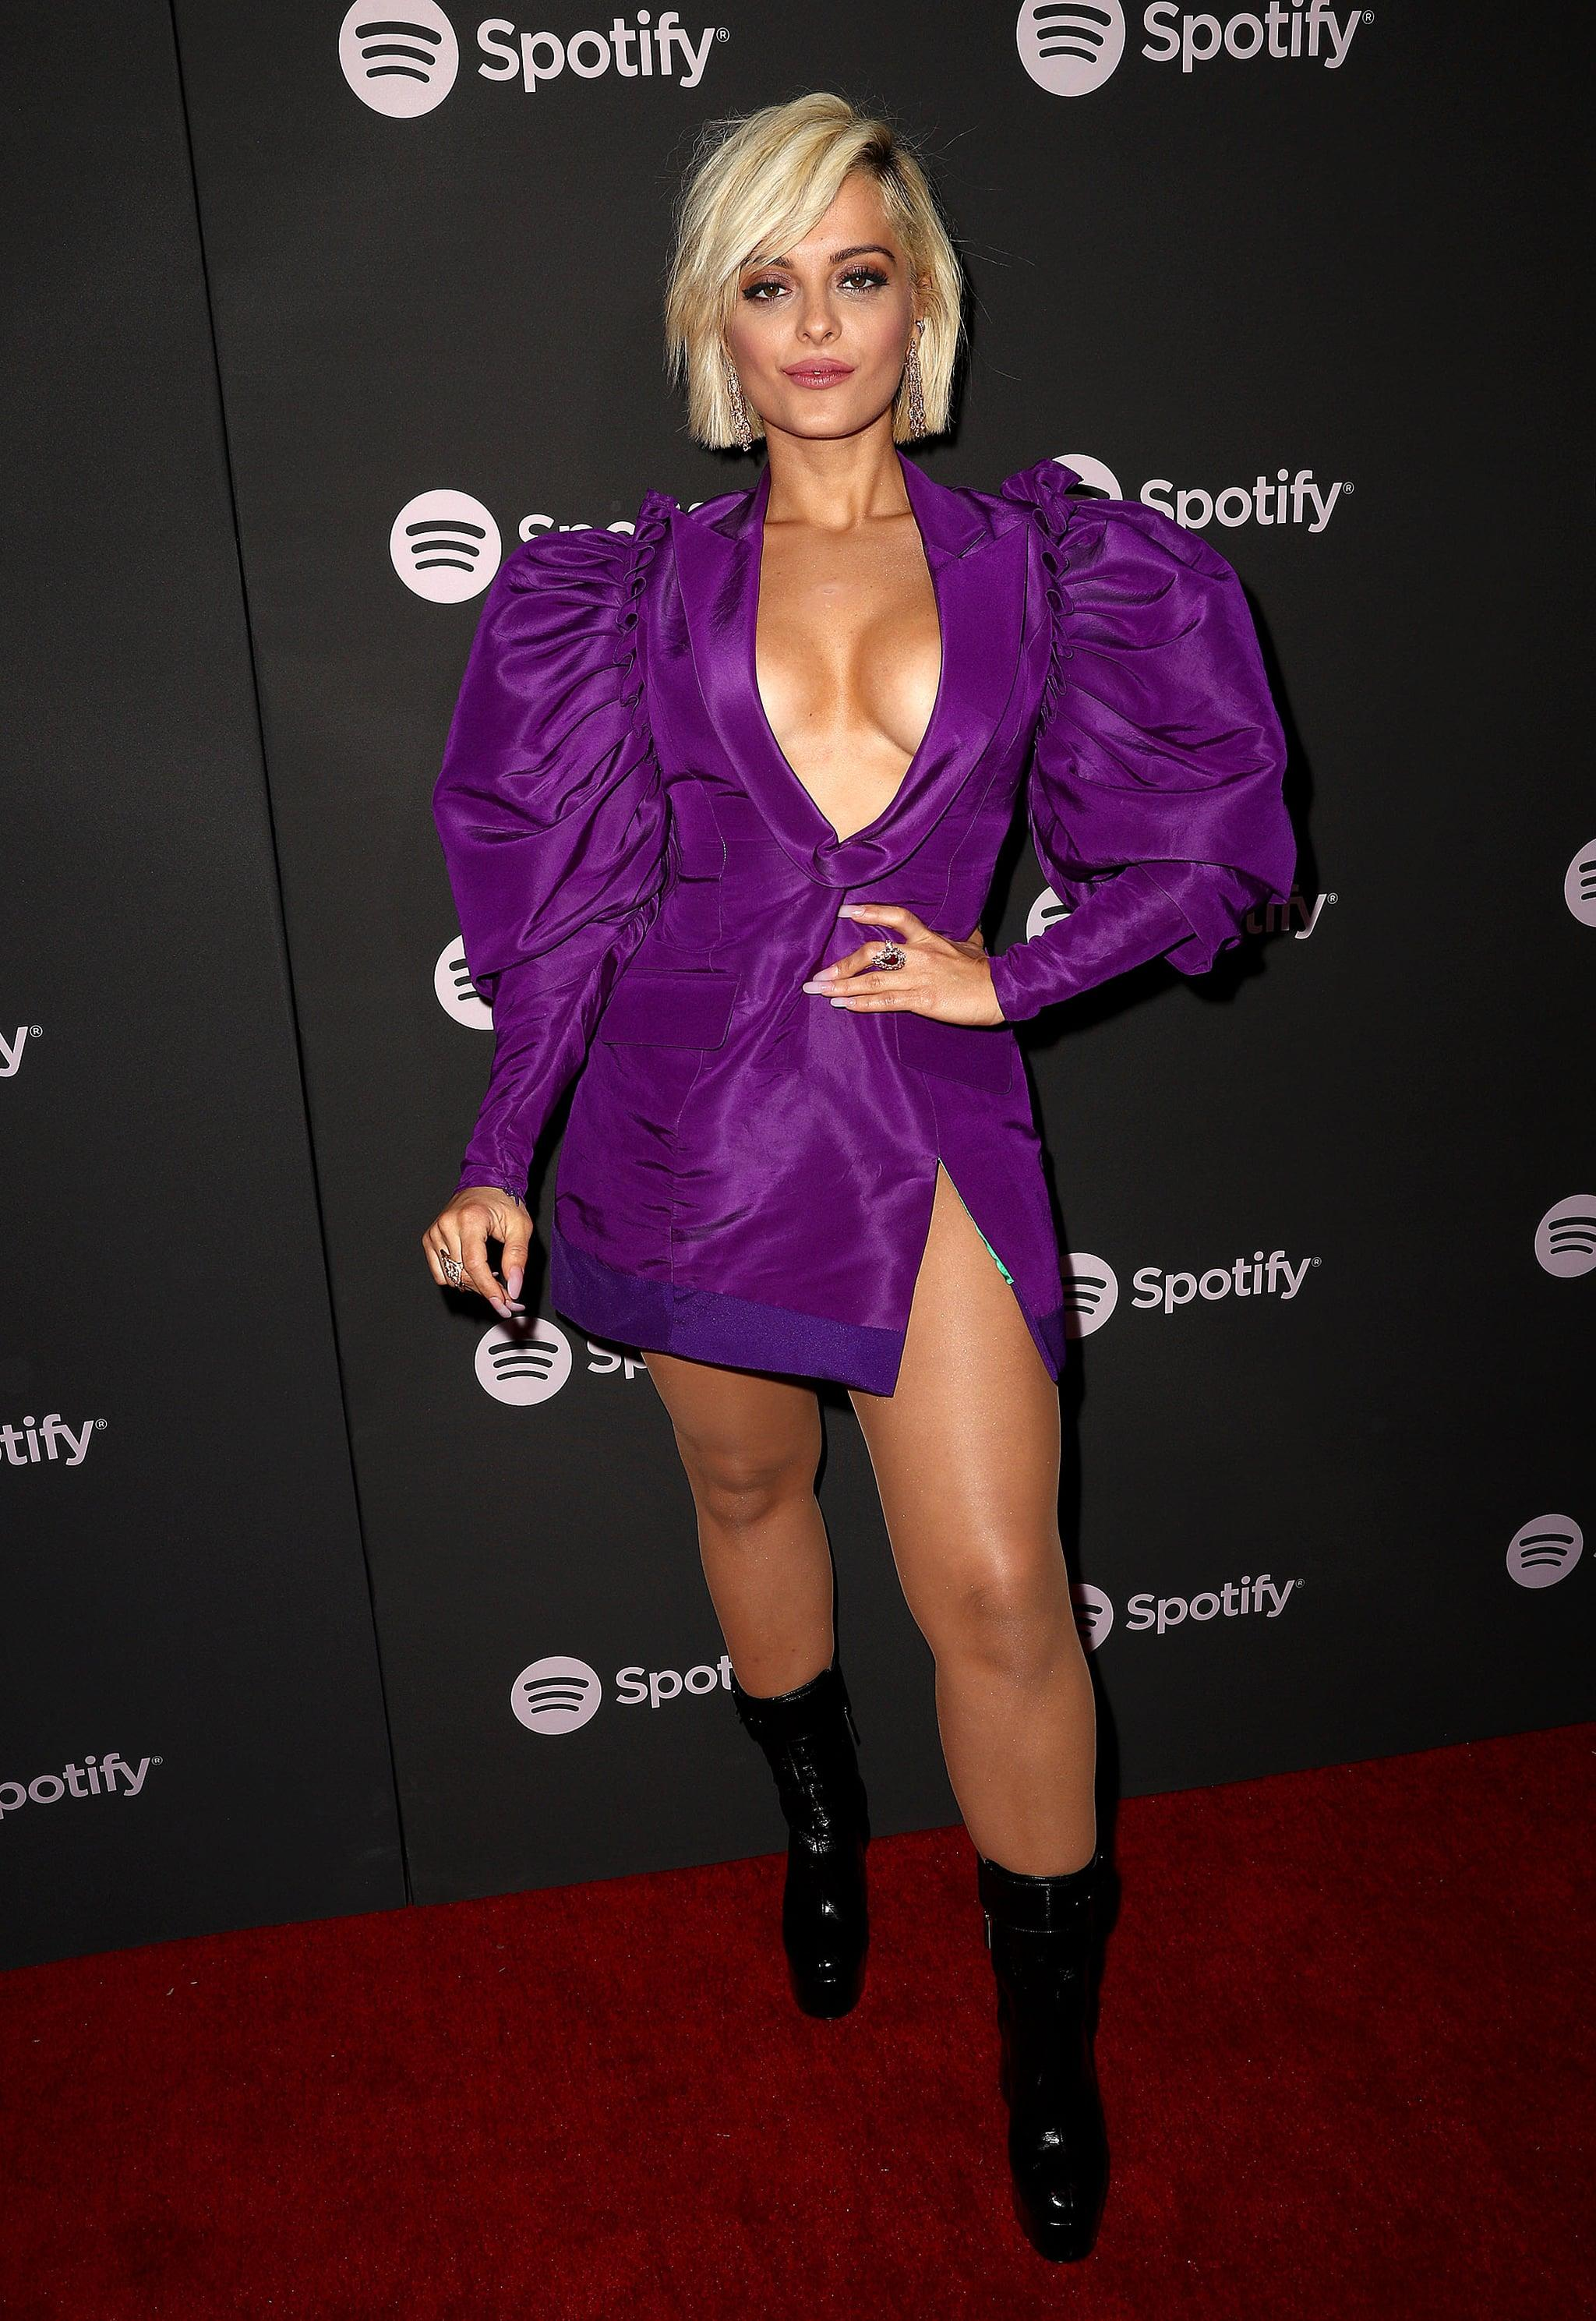 Bebe Rexha Pictures So Sexy Youre Gonna Need A Few Minutes